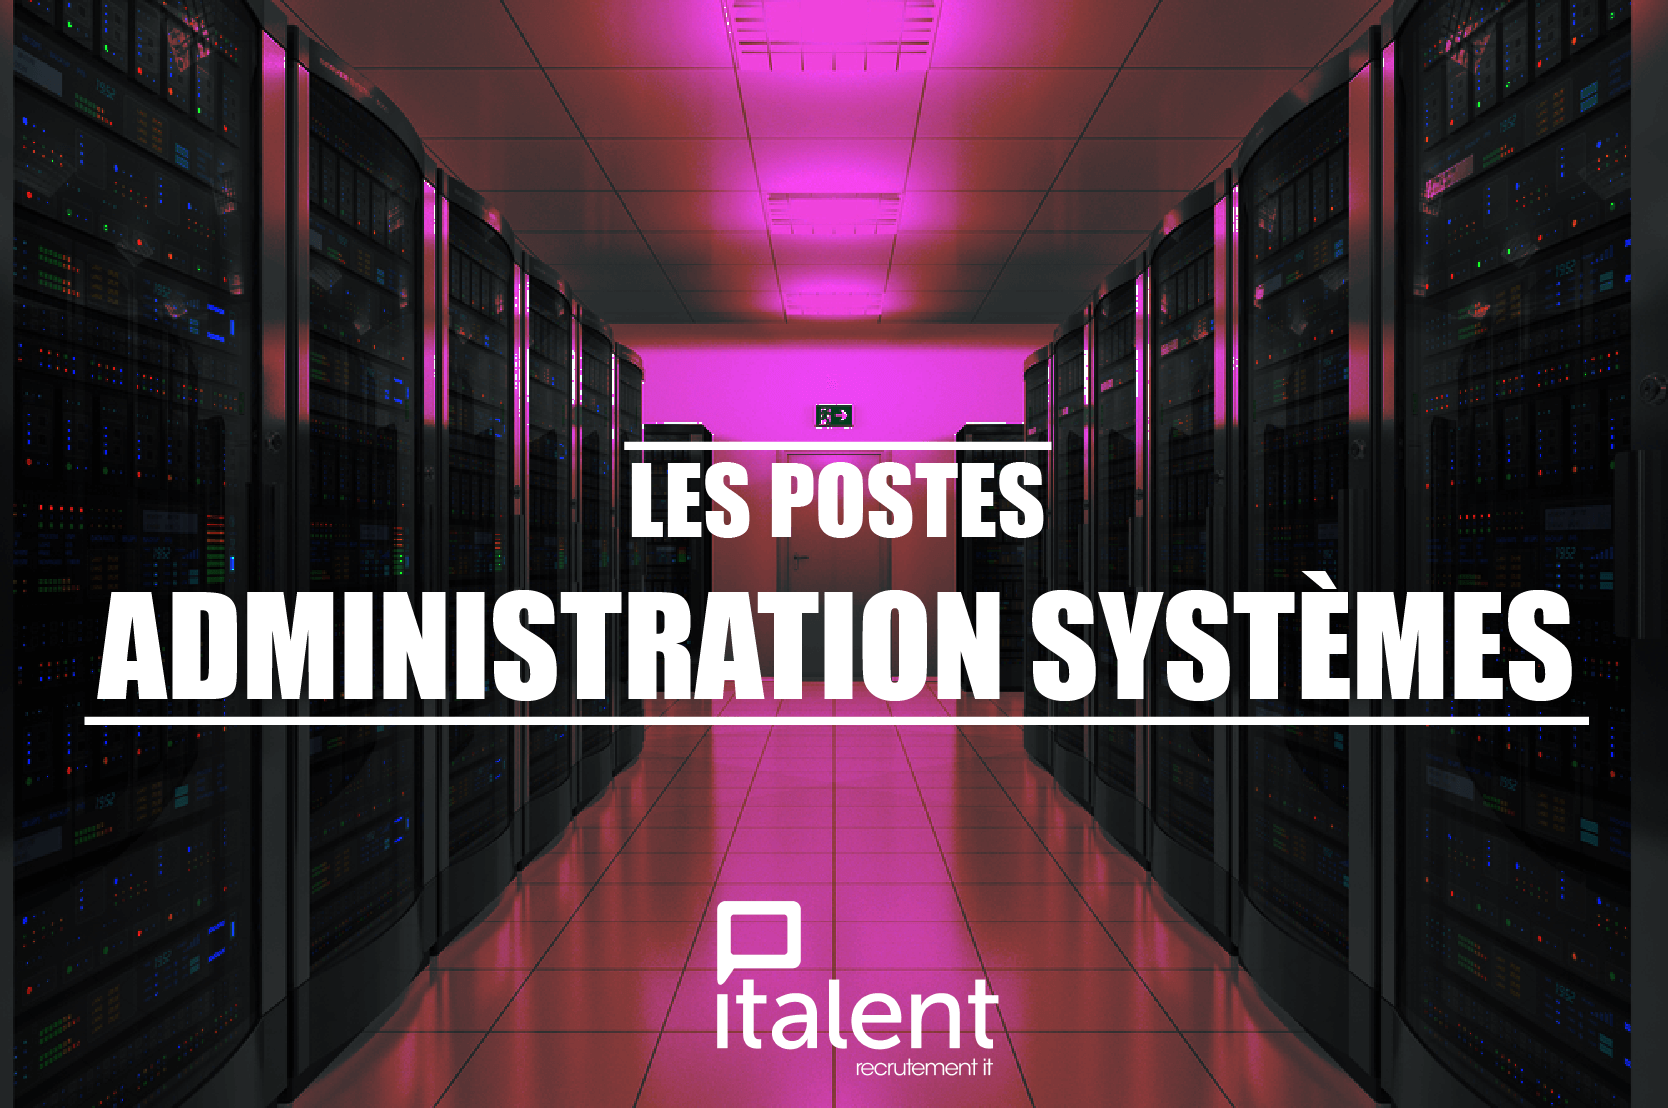 POSTES ADMINISTRATION SYSTEMES